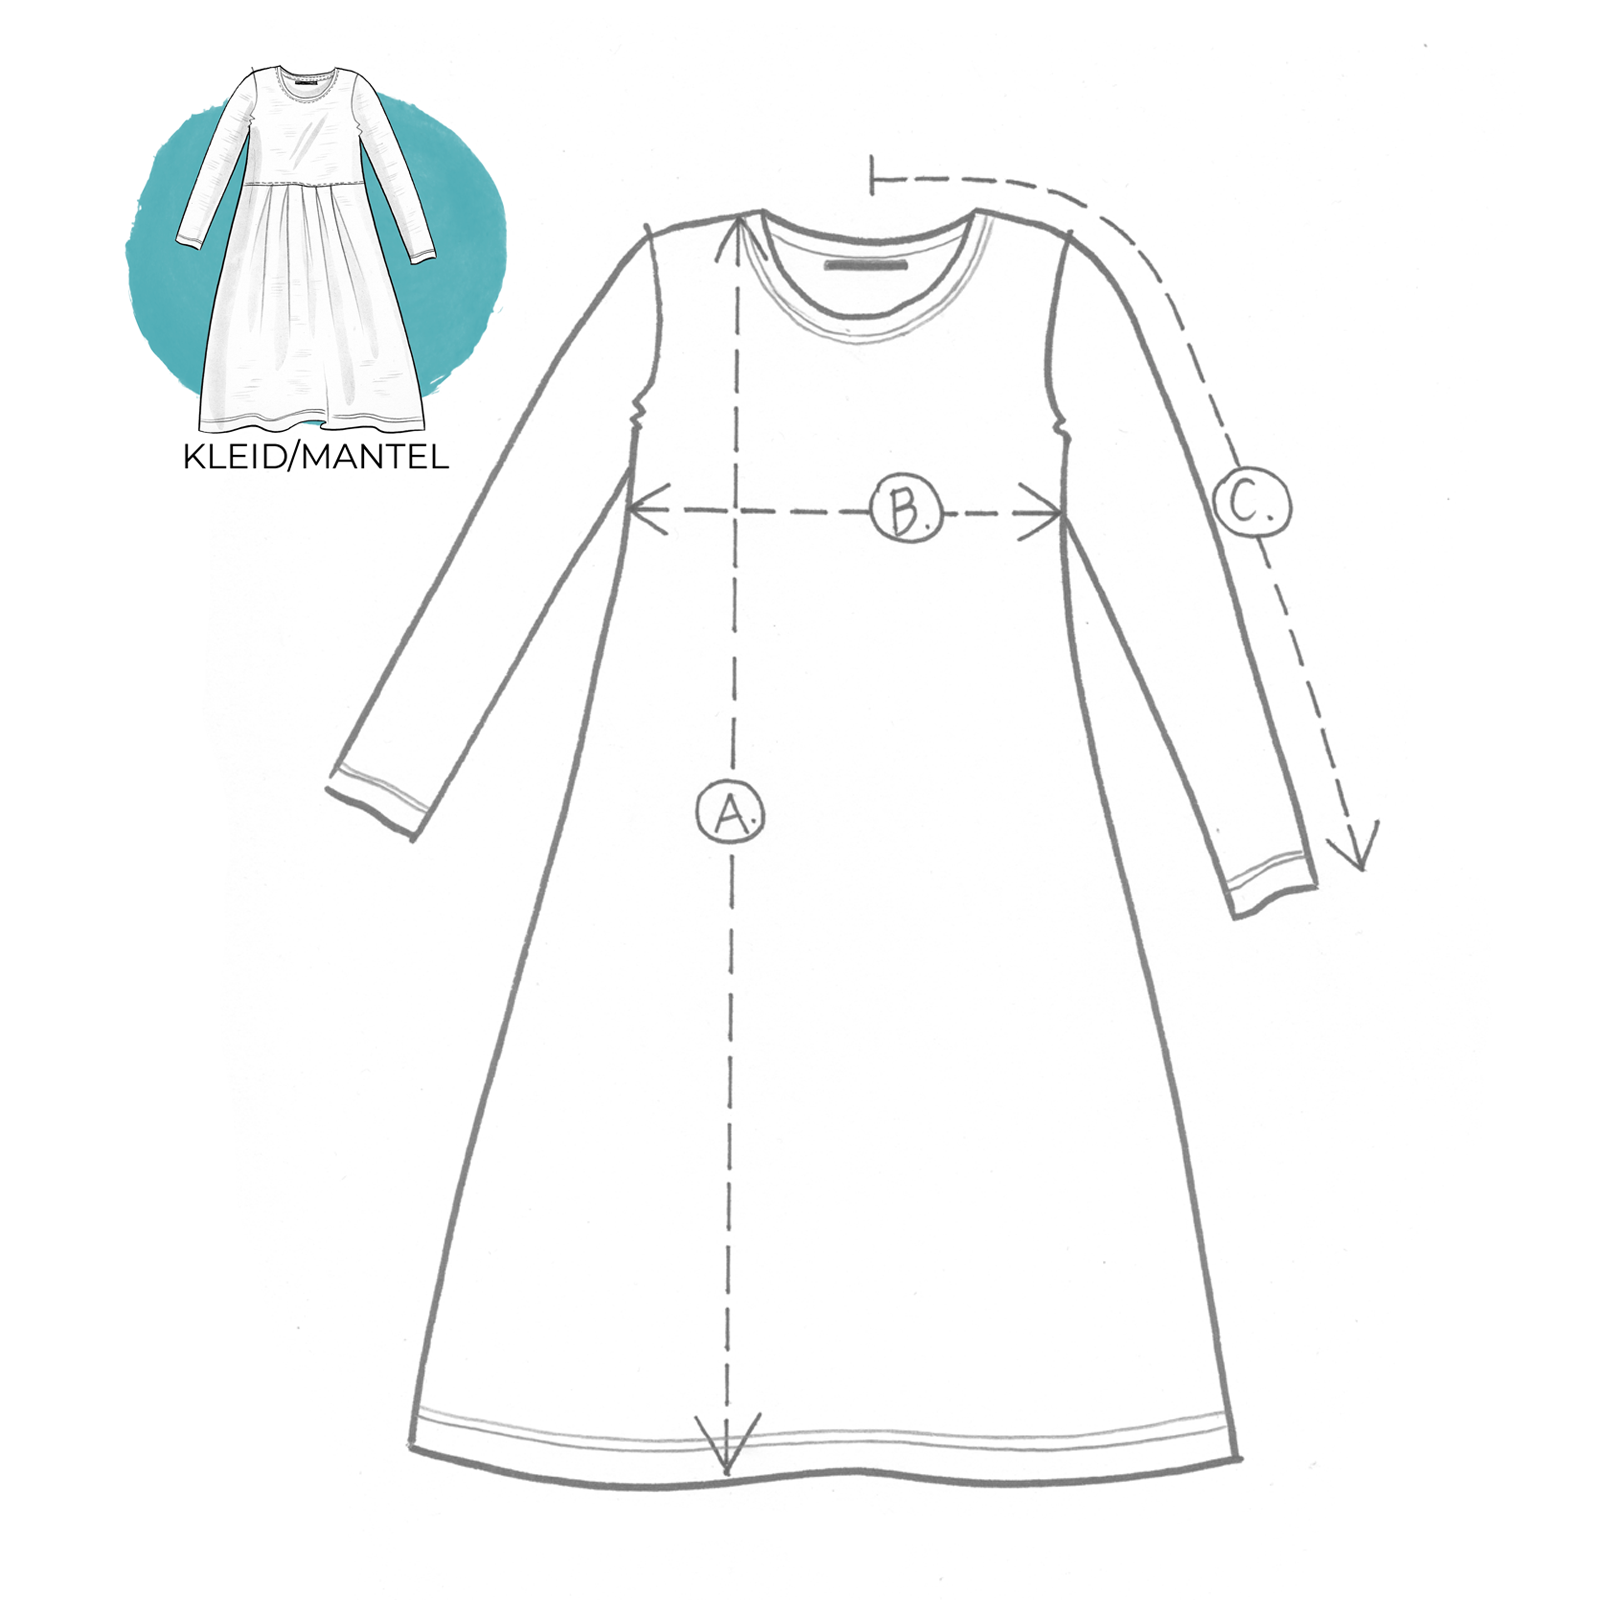 measurment guide_icon_illustration_DRESS_GE.png